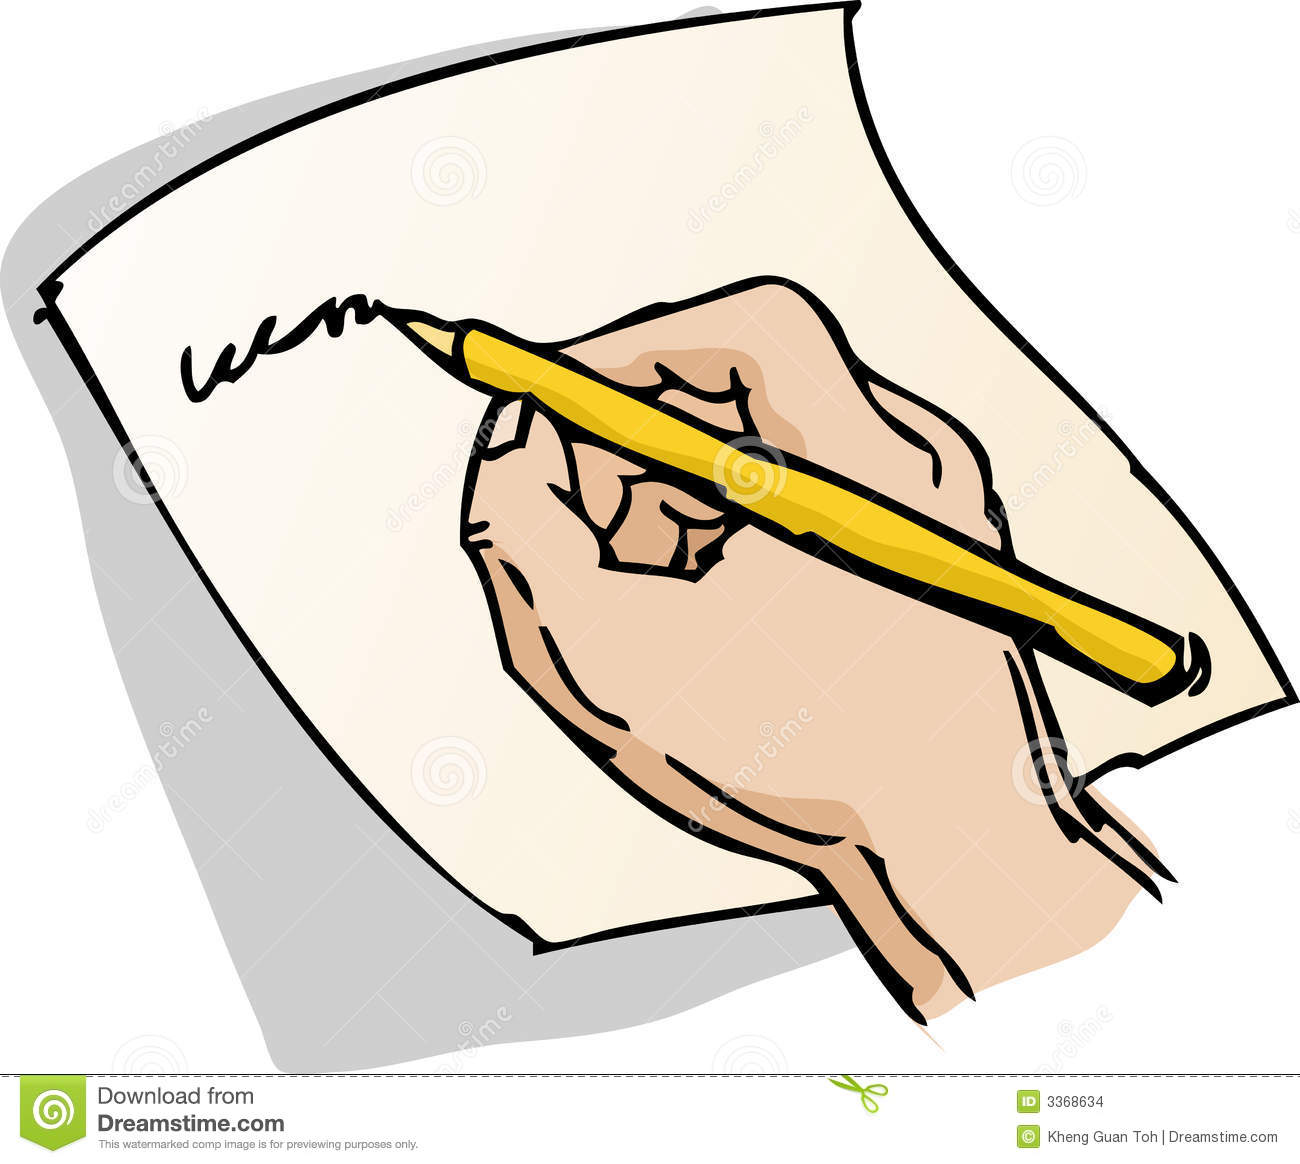 Hand Writing On Paper Clipart.